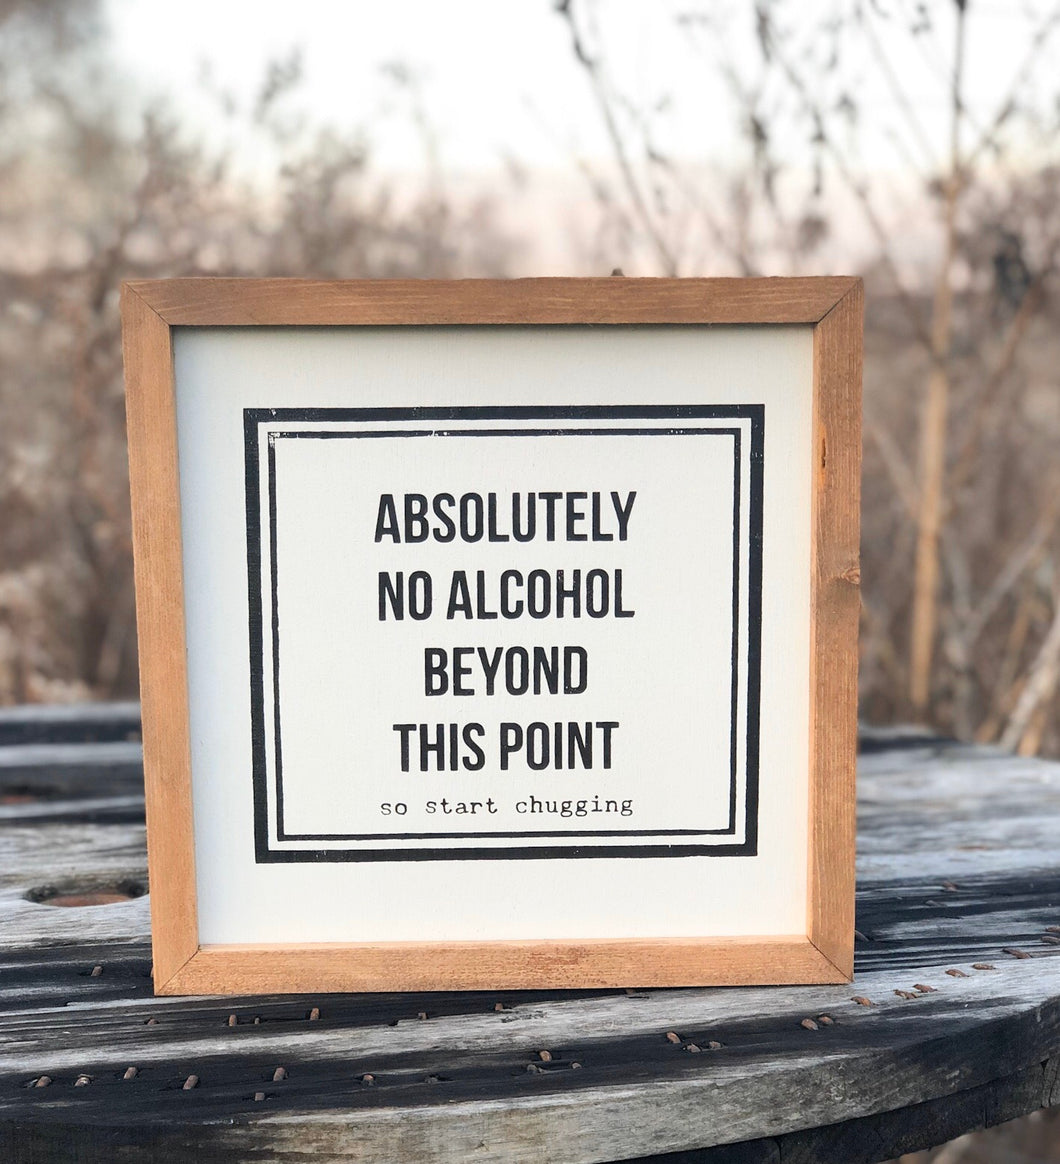 ABSOLUTELY NO ALCOHOL BEYOND THIS POINT. SO START CHUGGING.